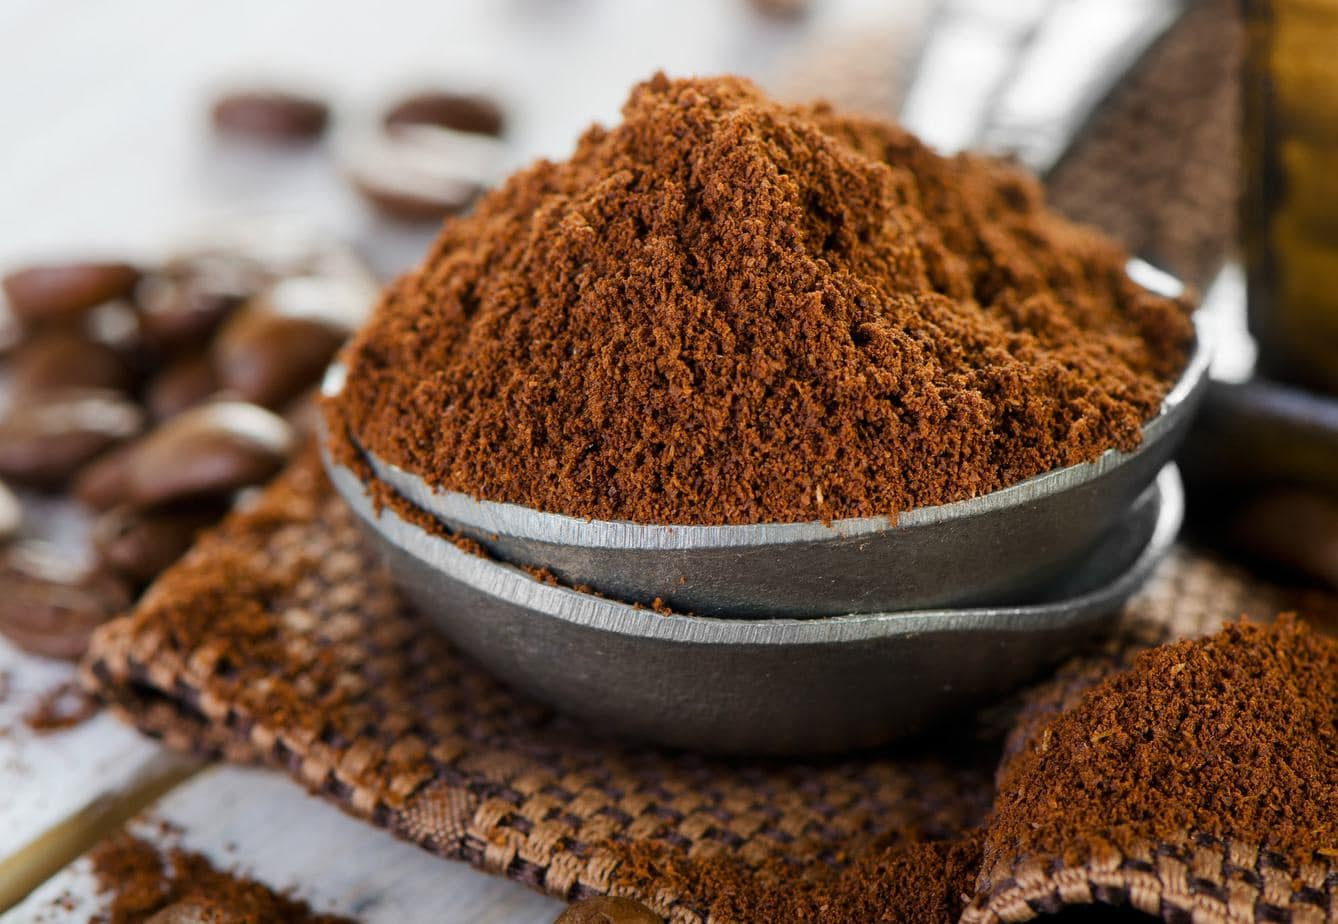 How To Make (And Improve) Instant Coffee Powder